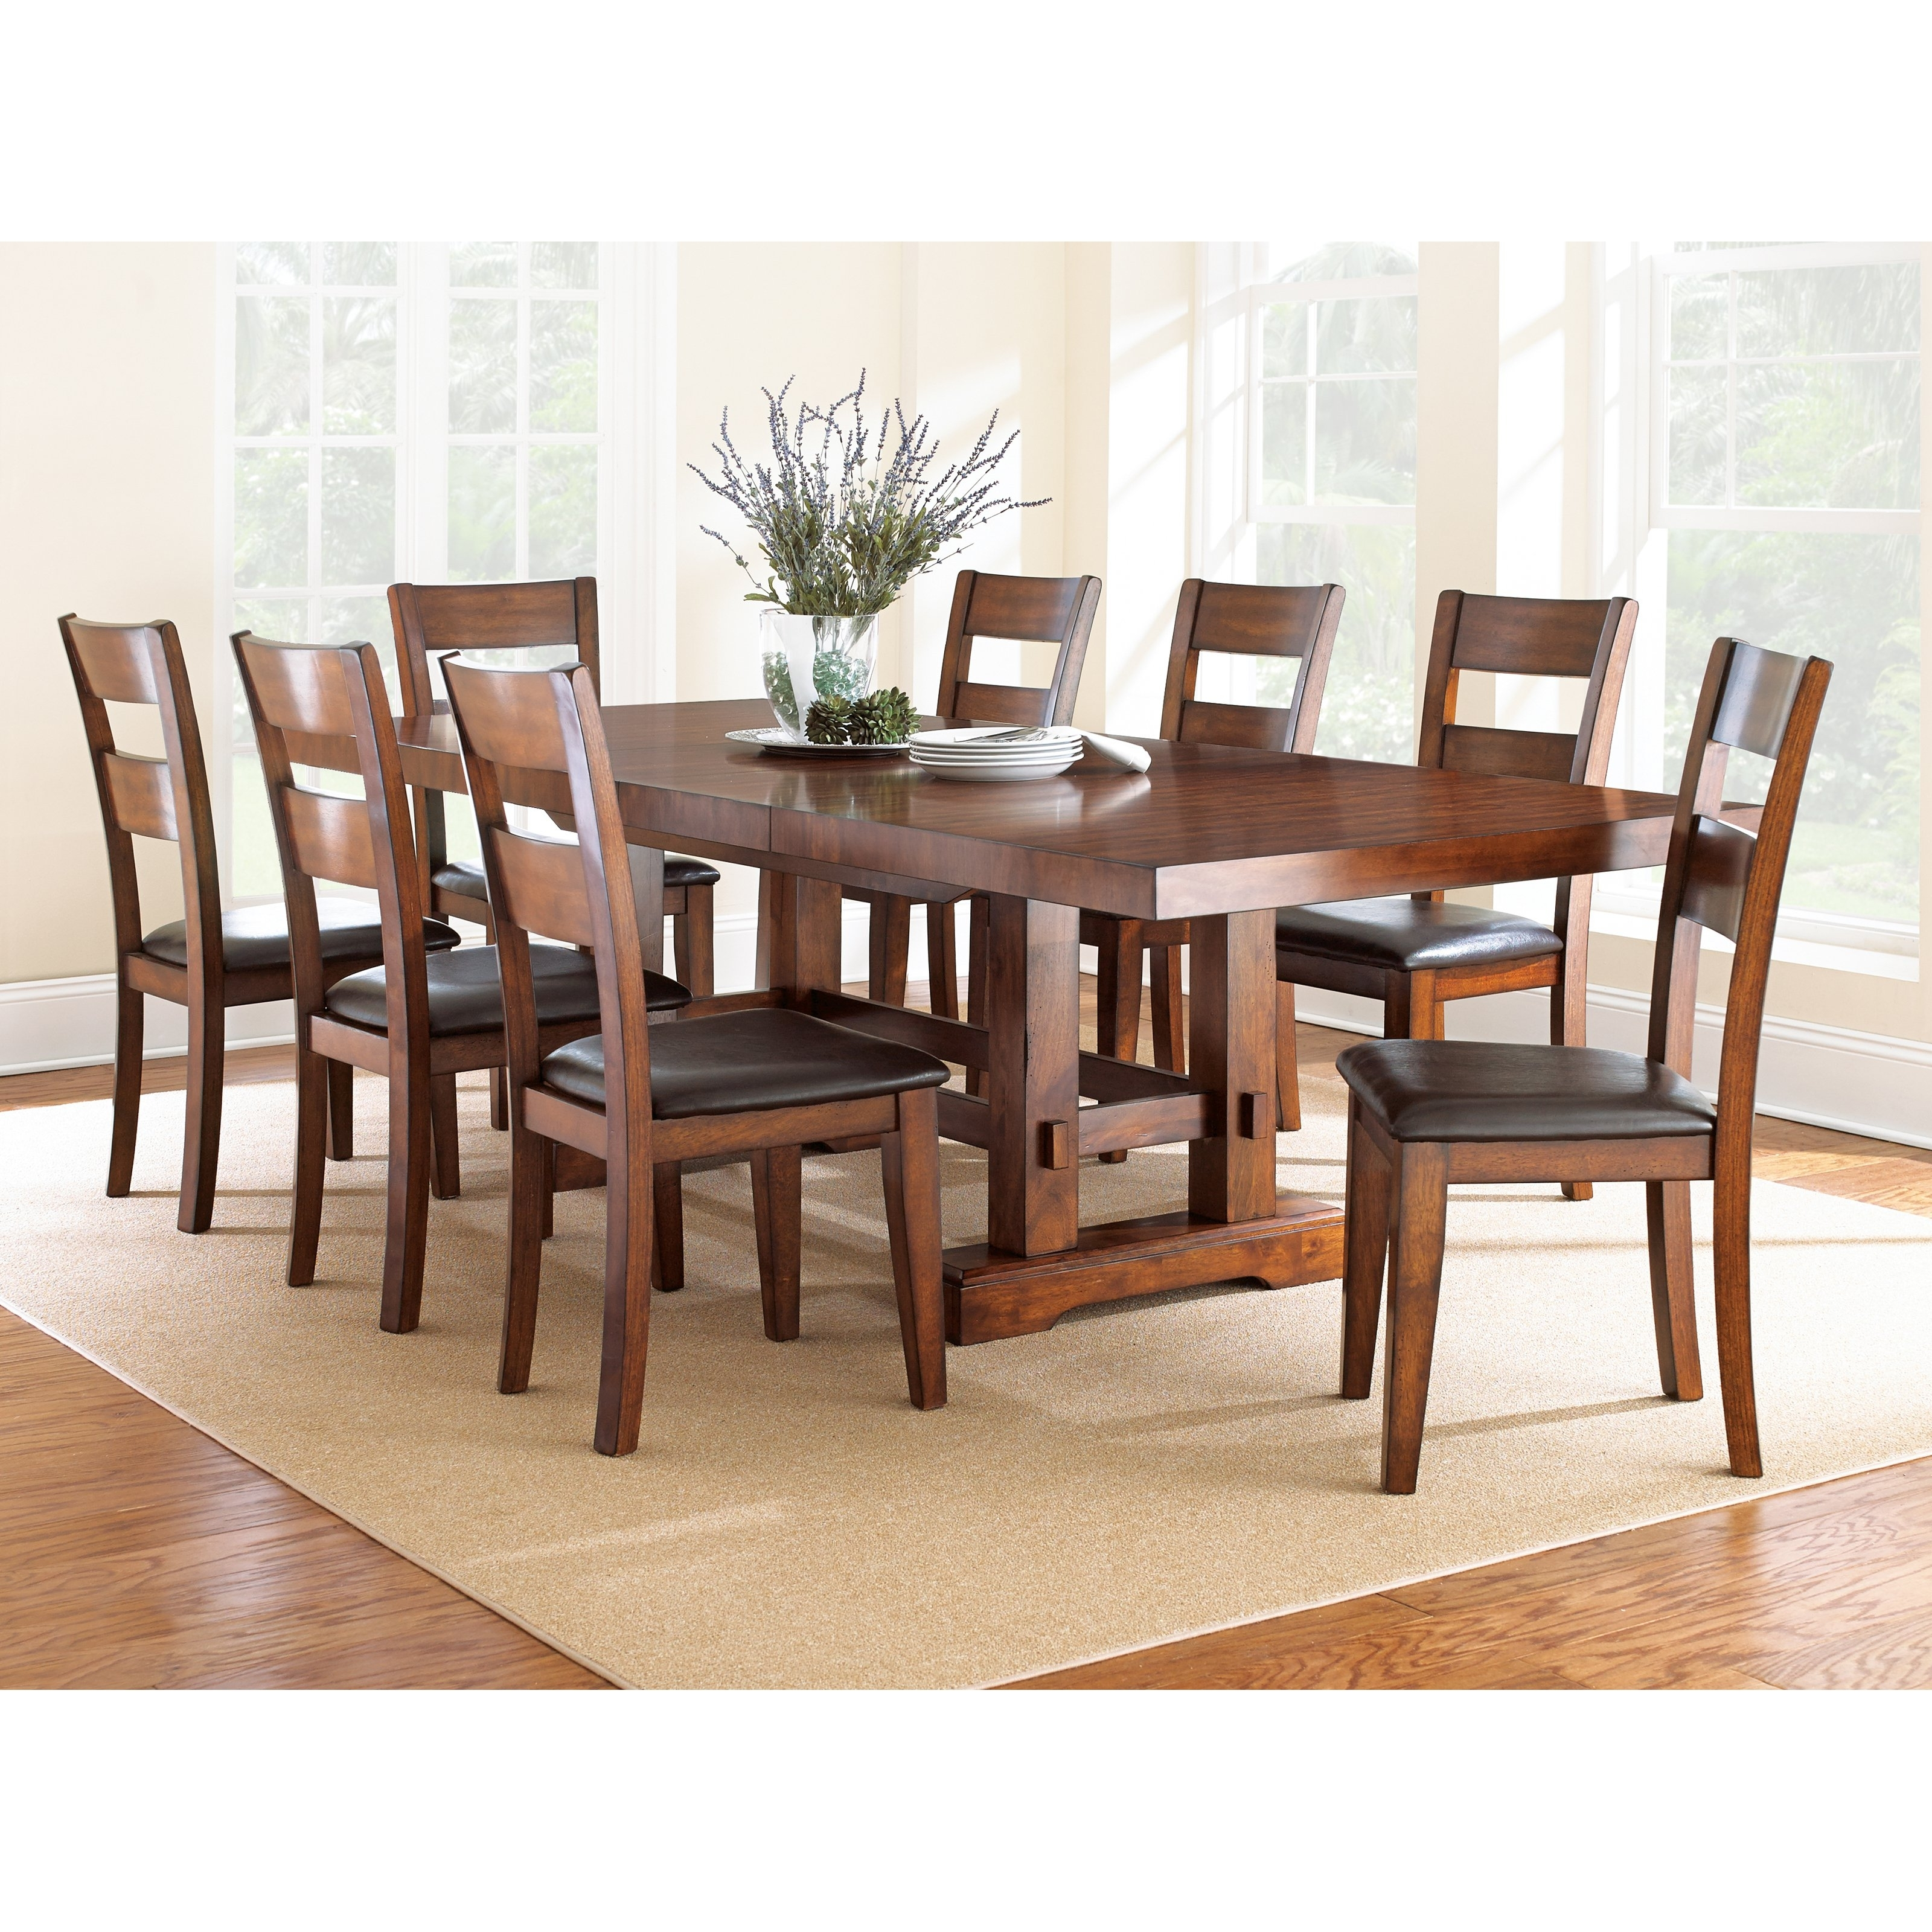 8 Chairs Dining Sets within 2018 Dining Room Set To Seat 8 Dining Set B And Q Dining Set Dining Room